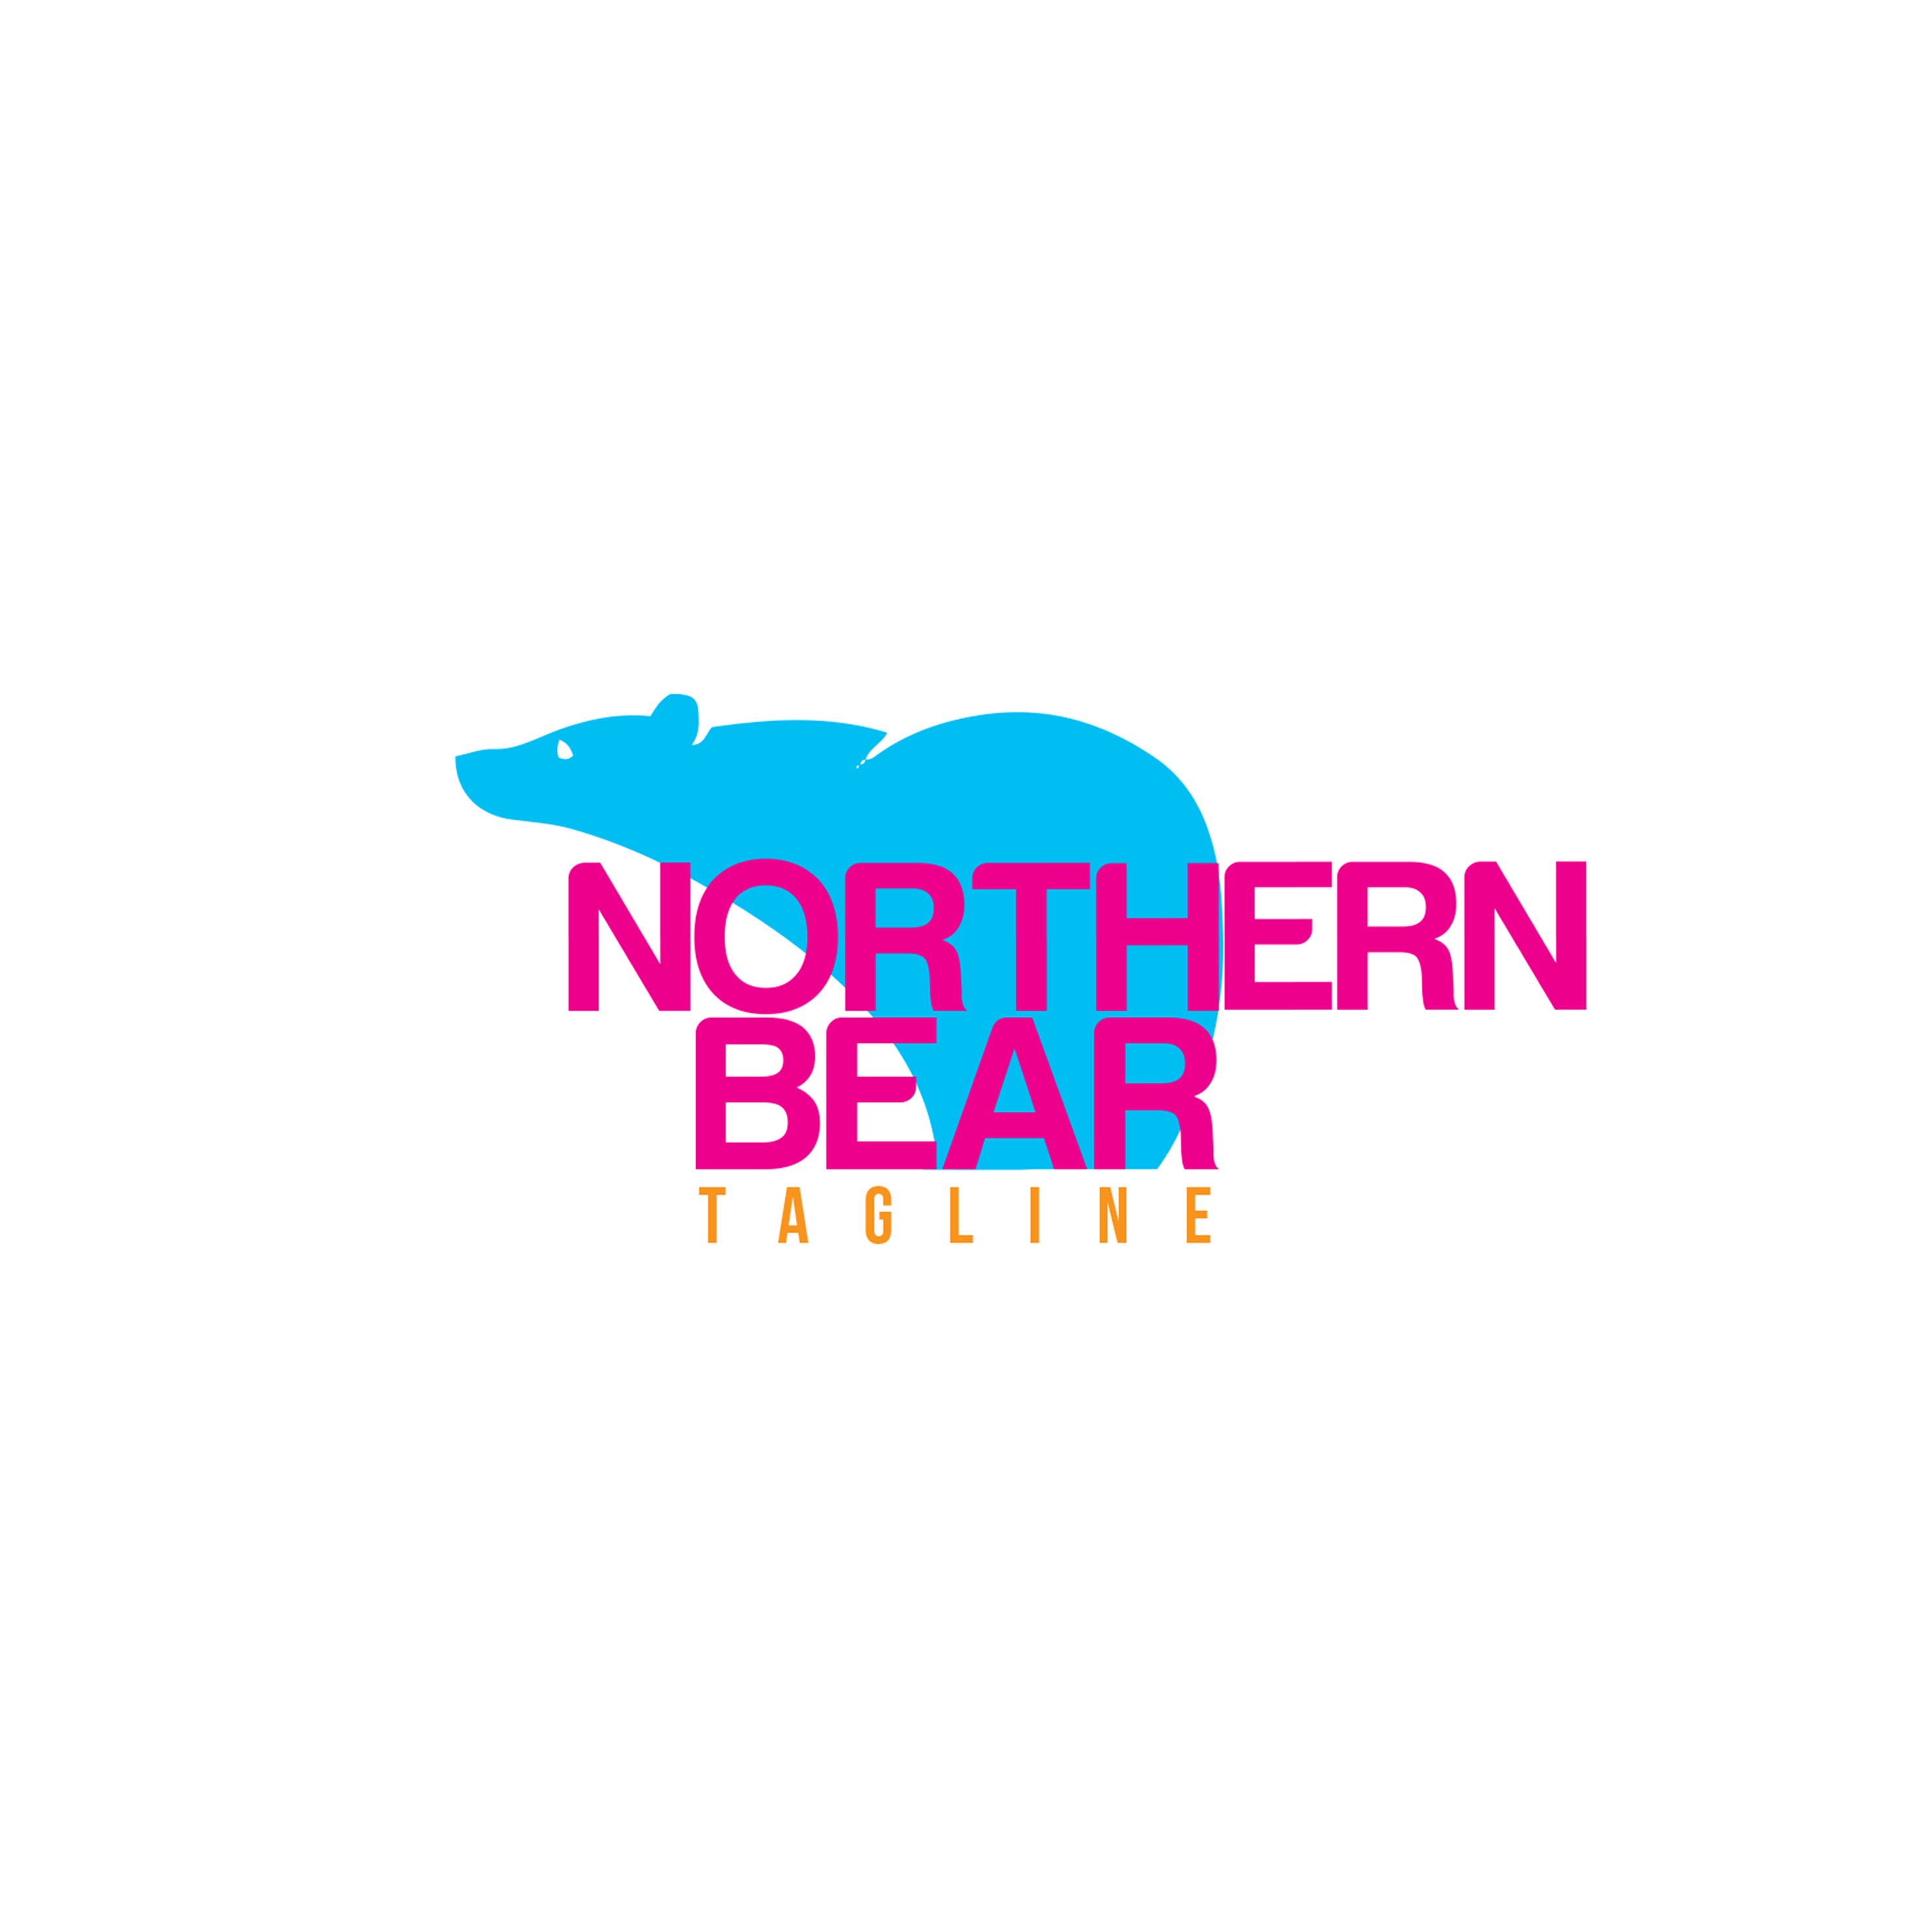 Northern Bear Logo Design